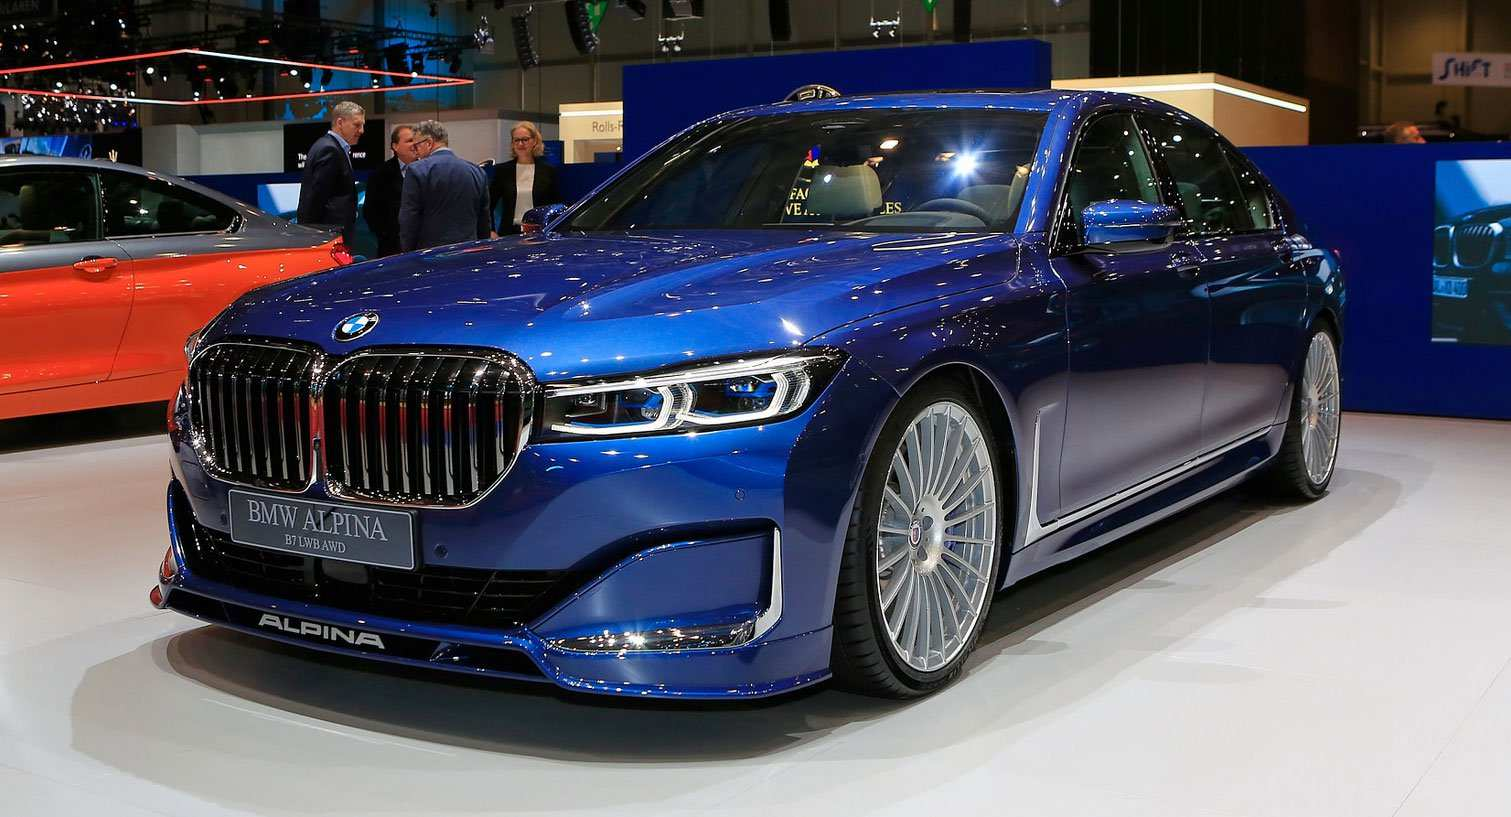 64 New Bmw Alpina B7 2020 Exterior and Interior by Bmw Alpina B7 2020